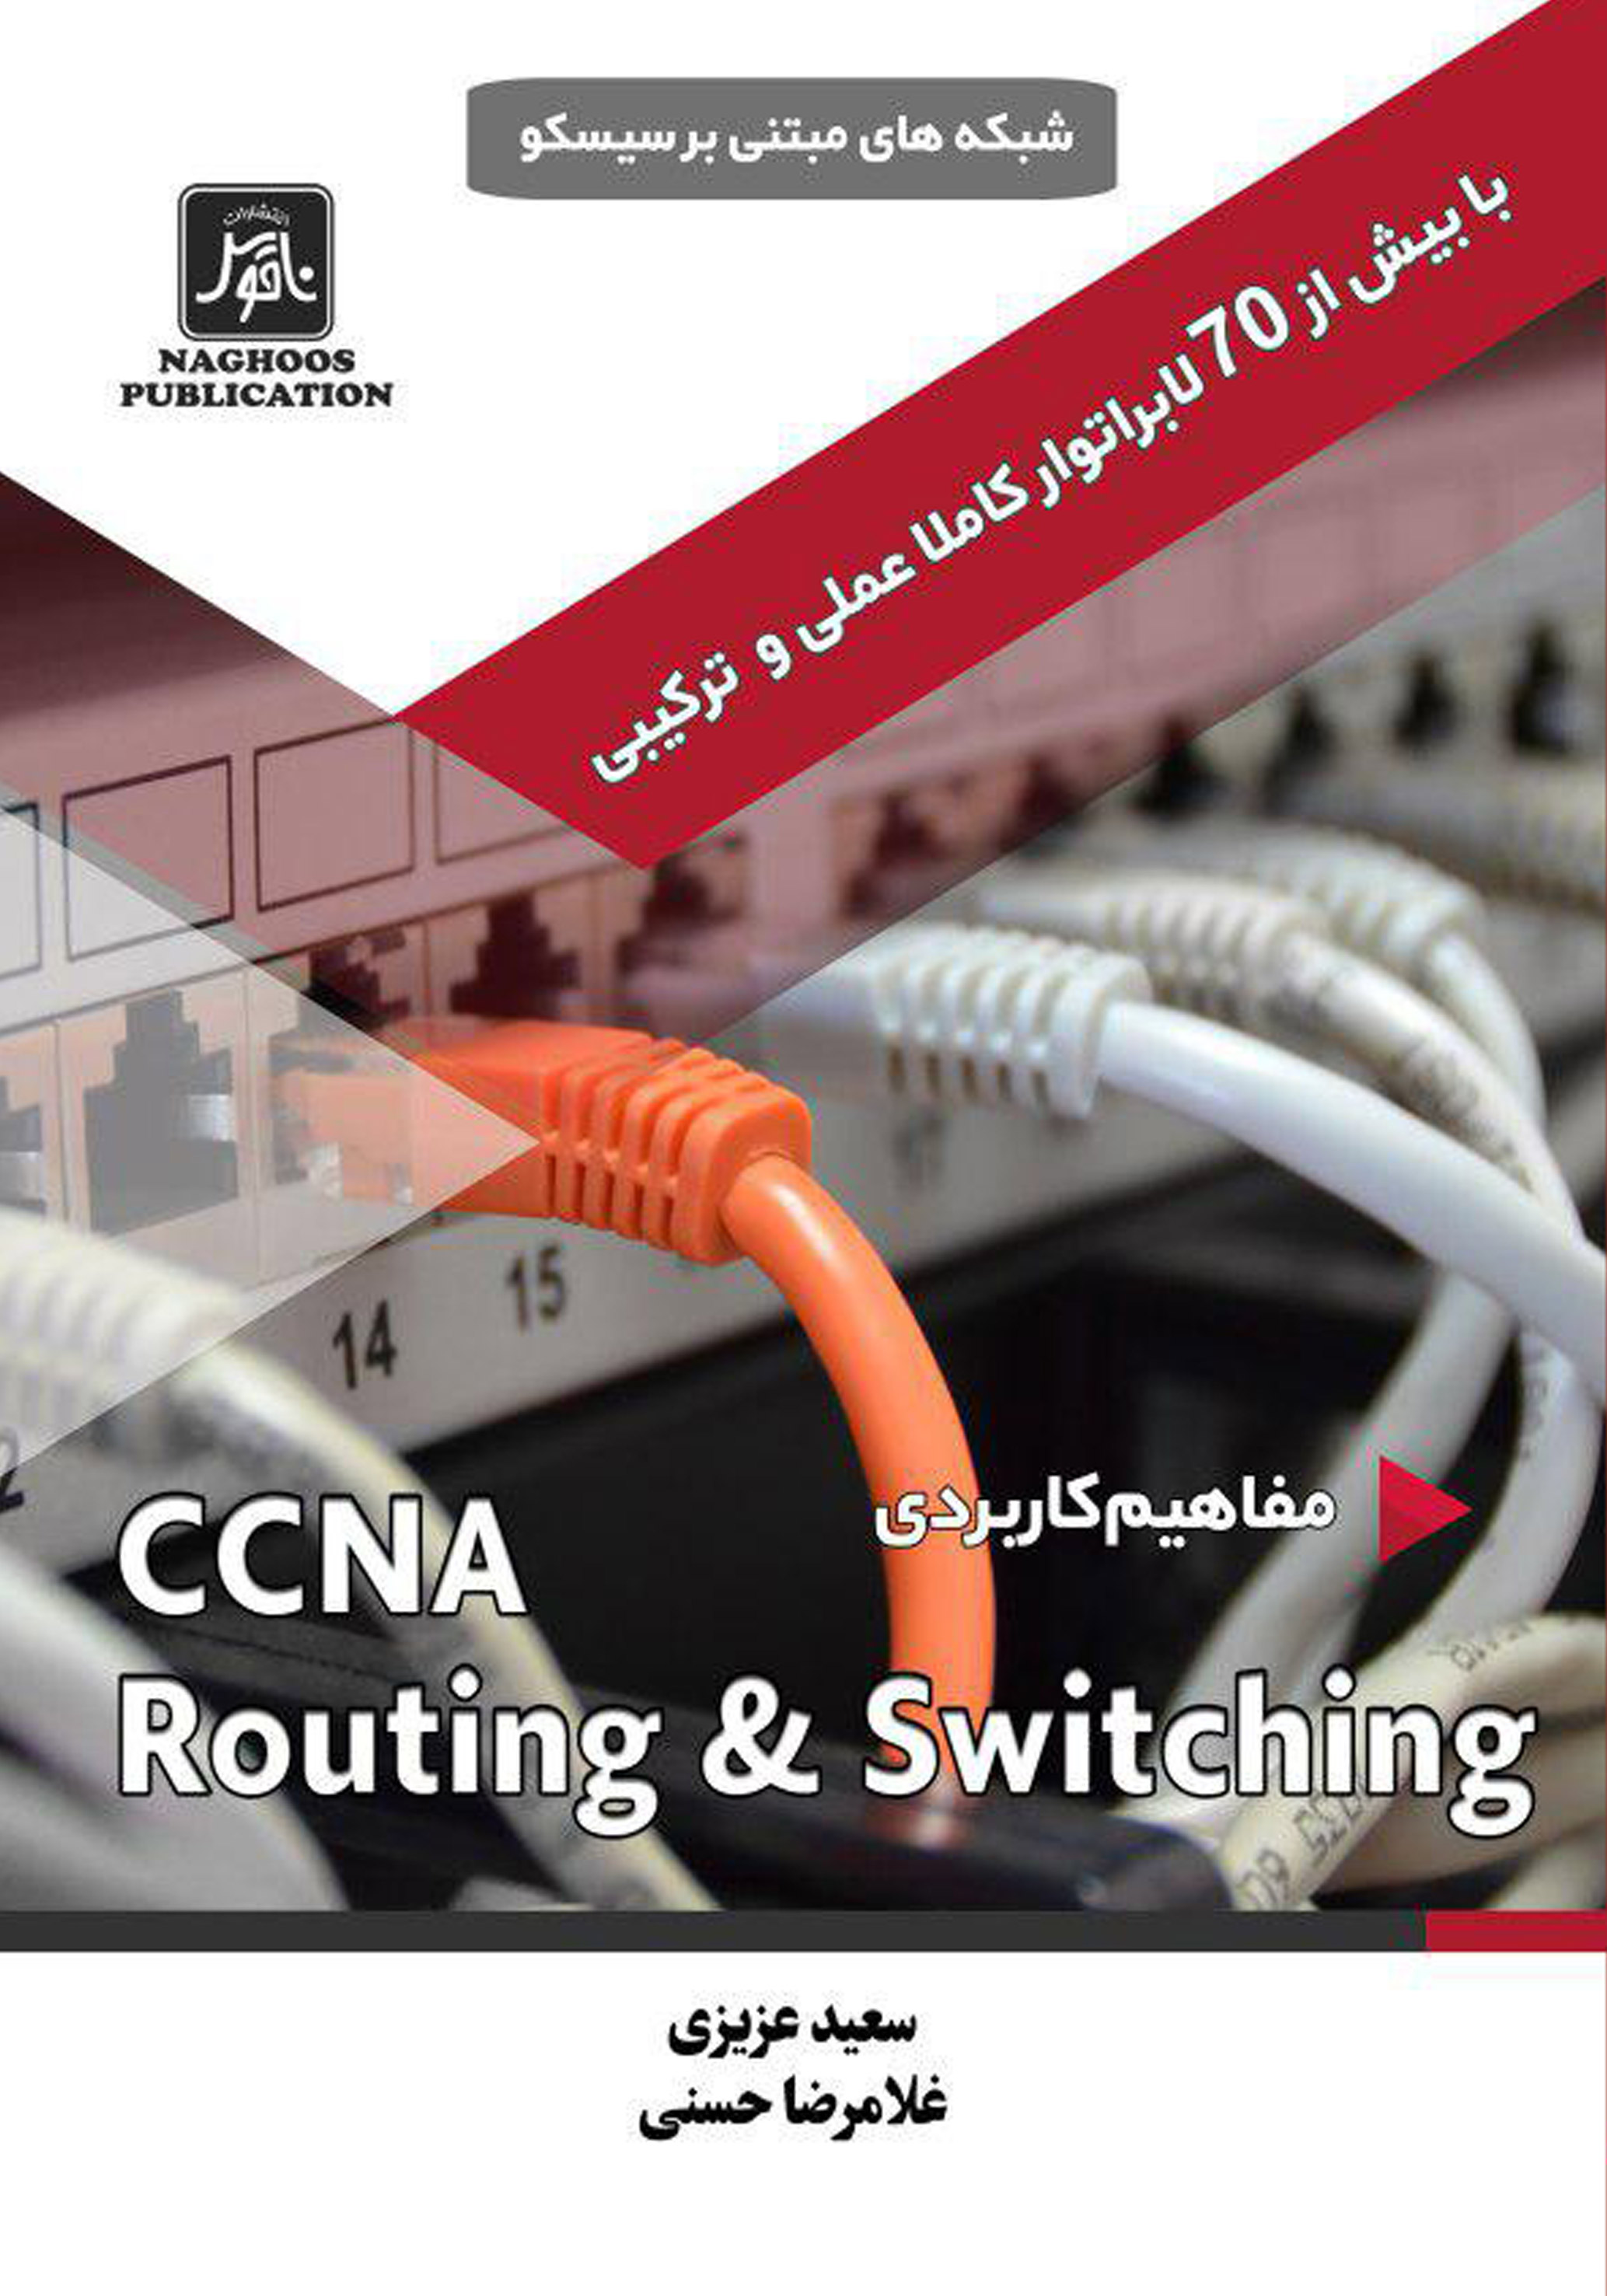 مفا هيم كاربرديCCNA  Routing&Switching